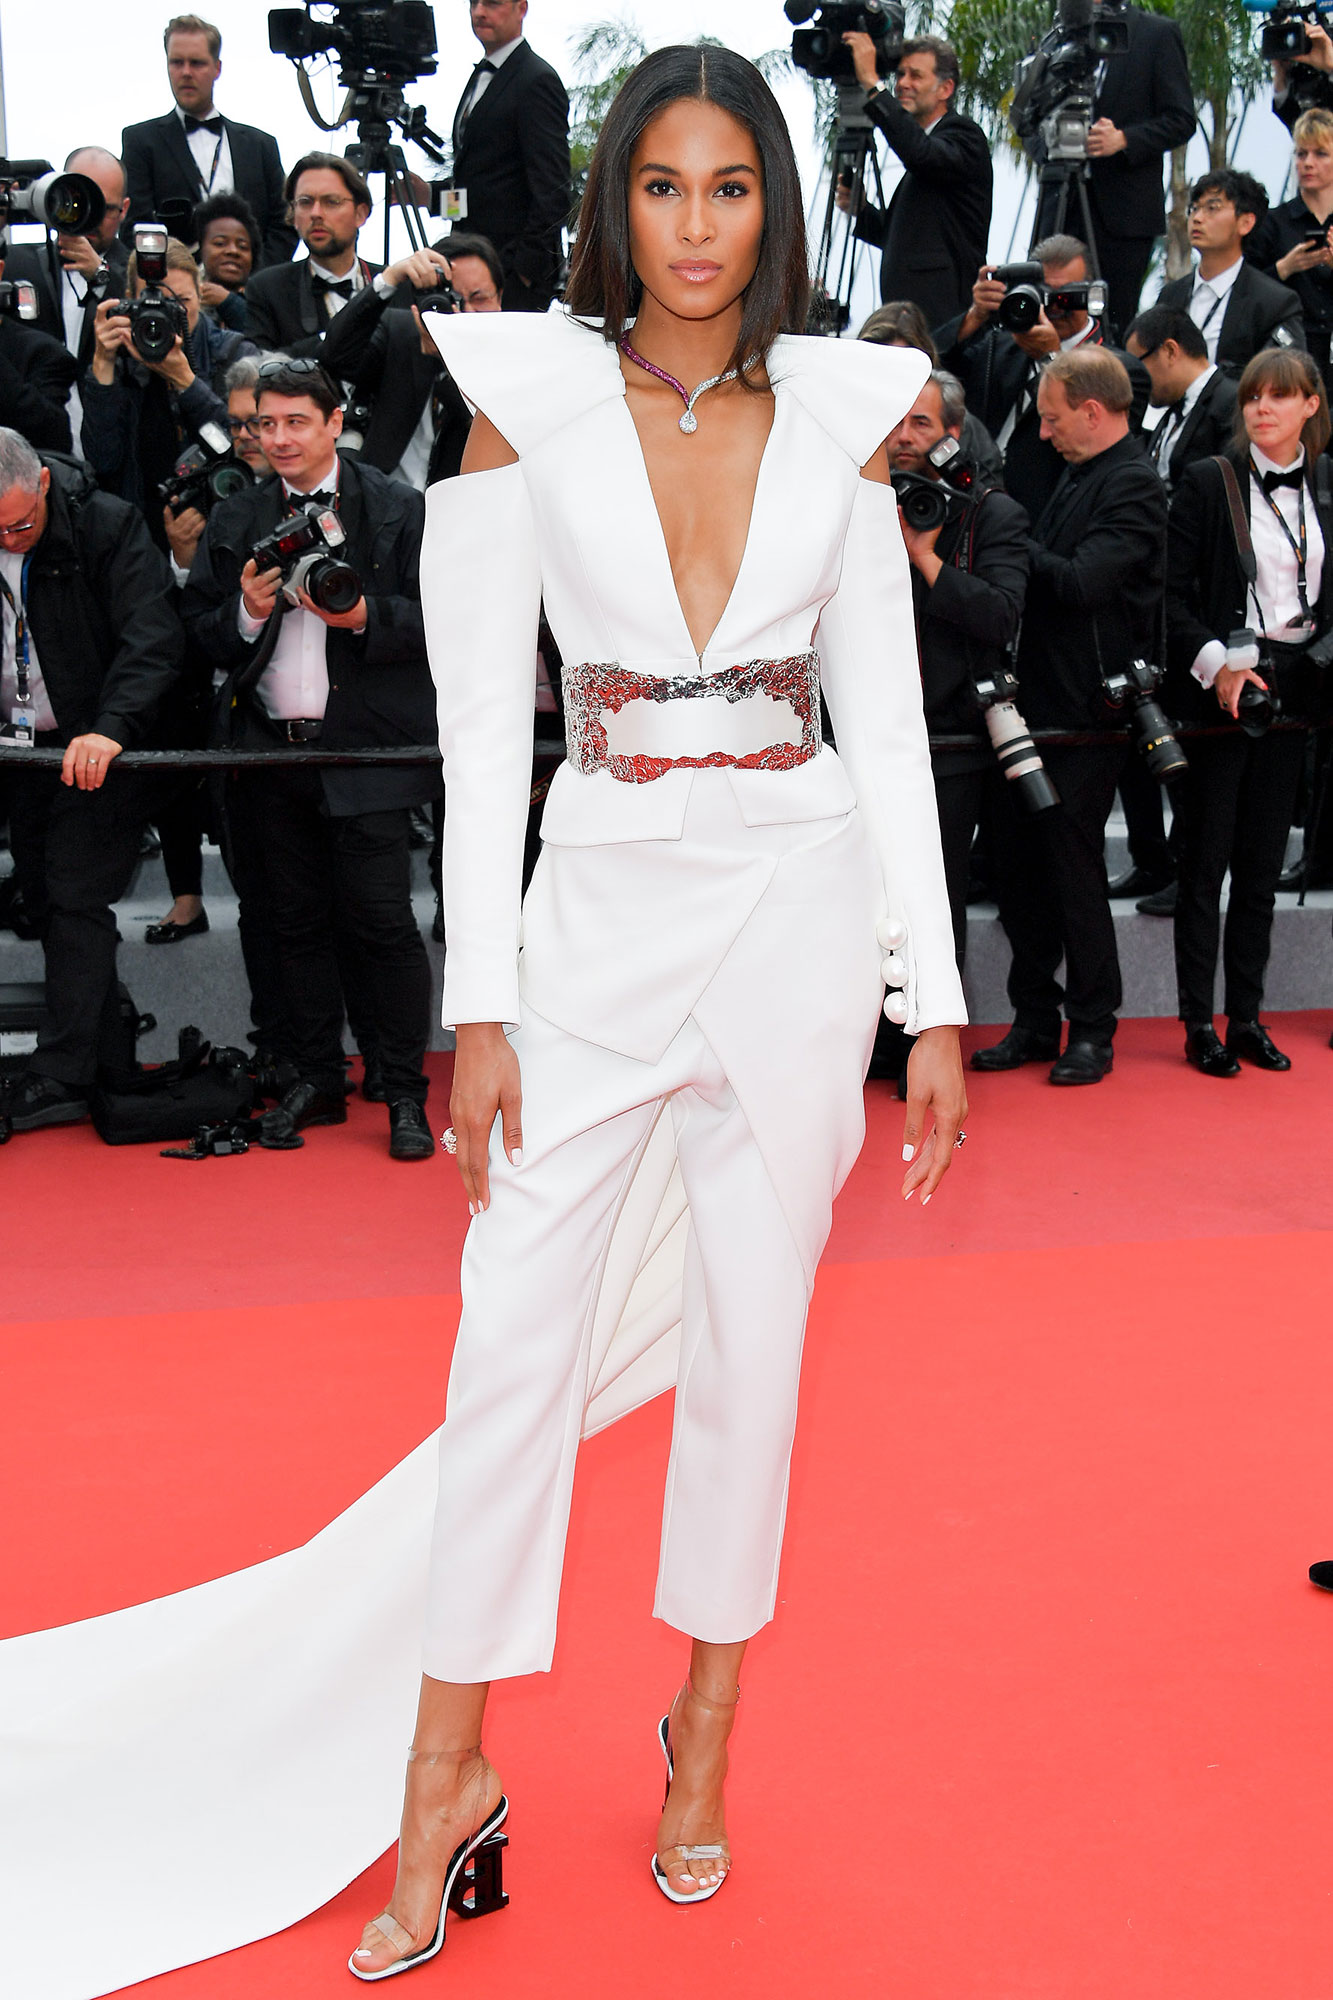 Cindy Bruna Memorial Day White - Need something a little fancier? This Balmain jumpsuit the French model wore on May 20, 2019 is fierce, funky and seriously beautiful.